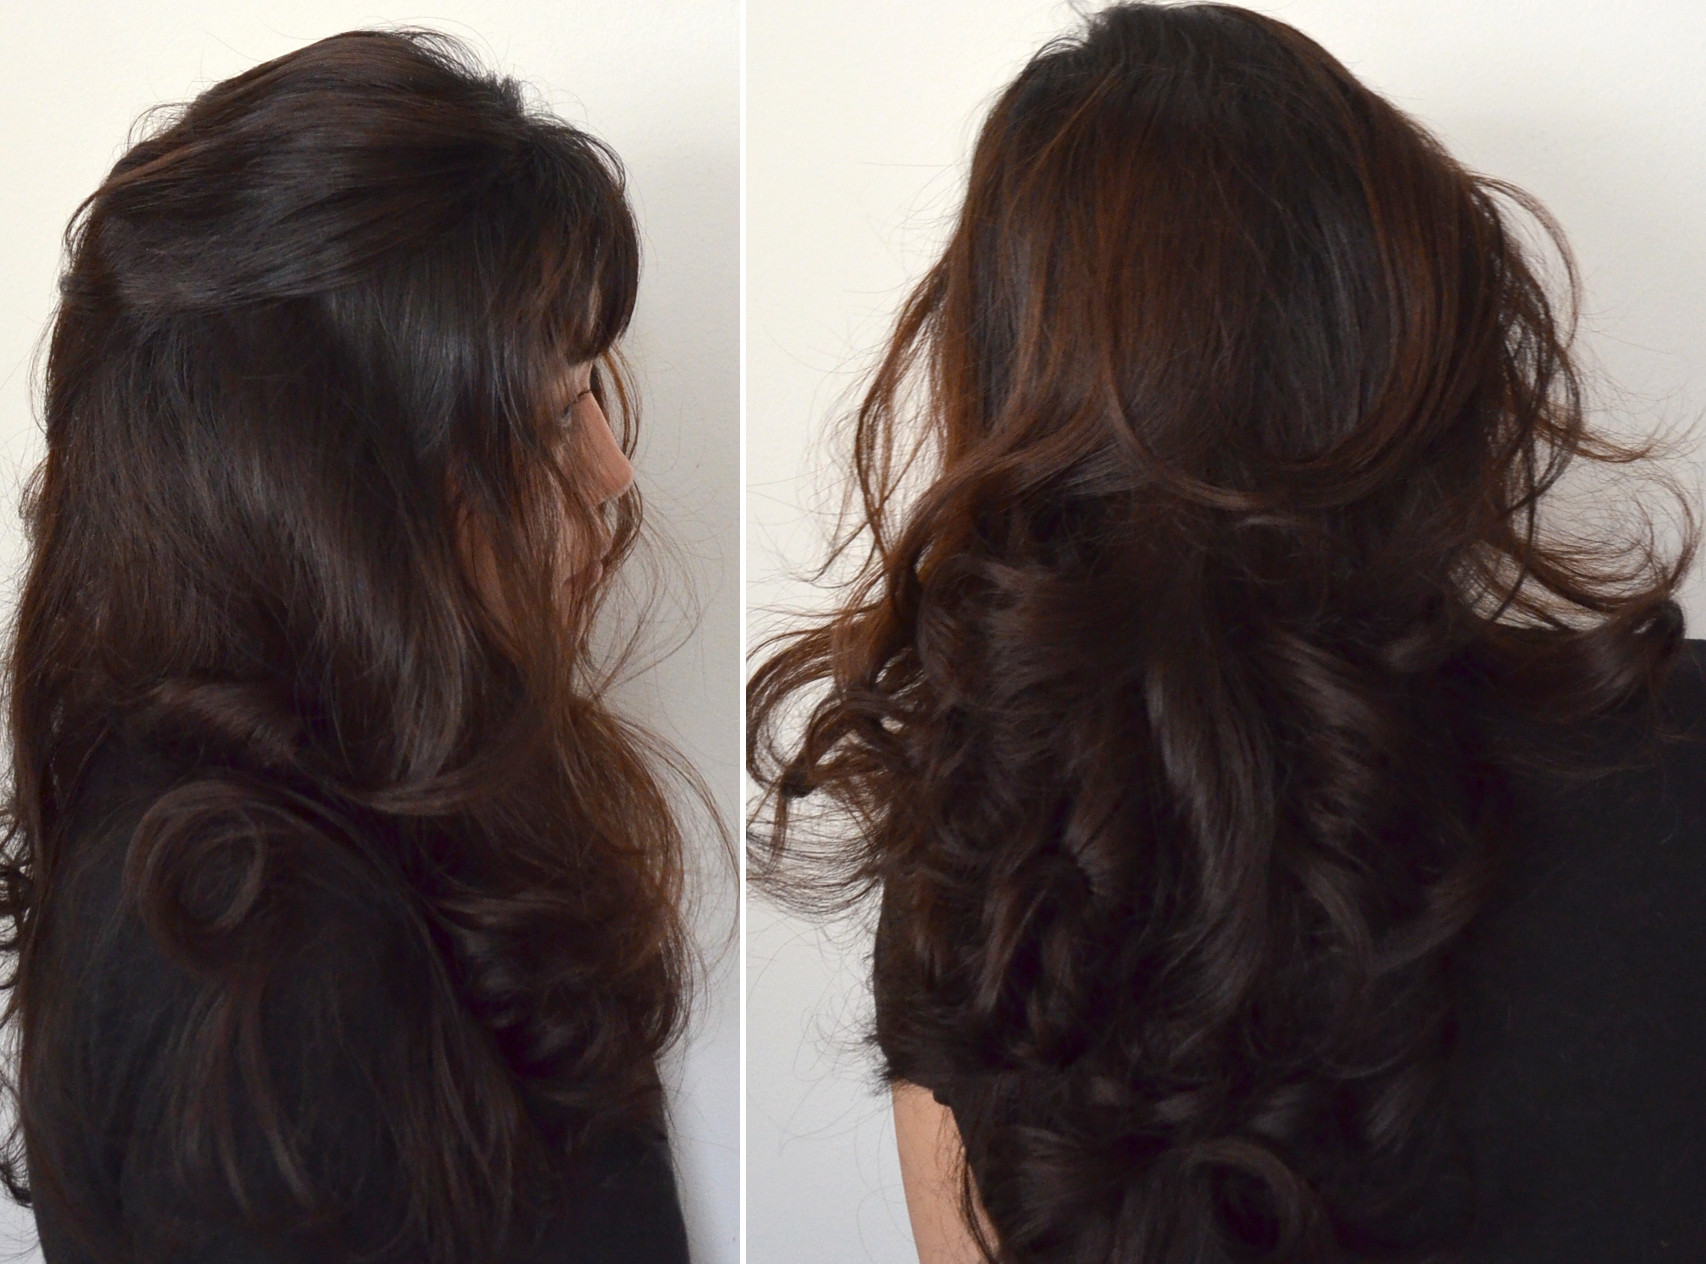 fast easy curling hair results without heat